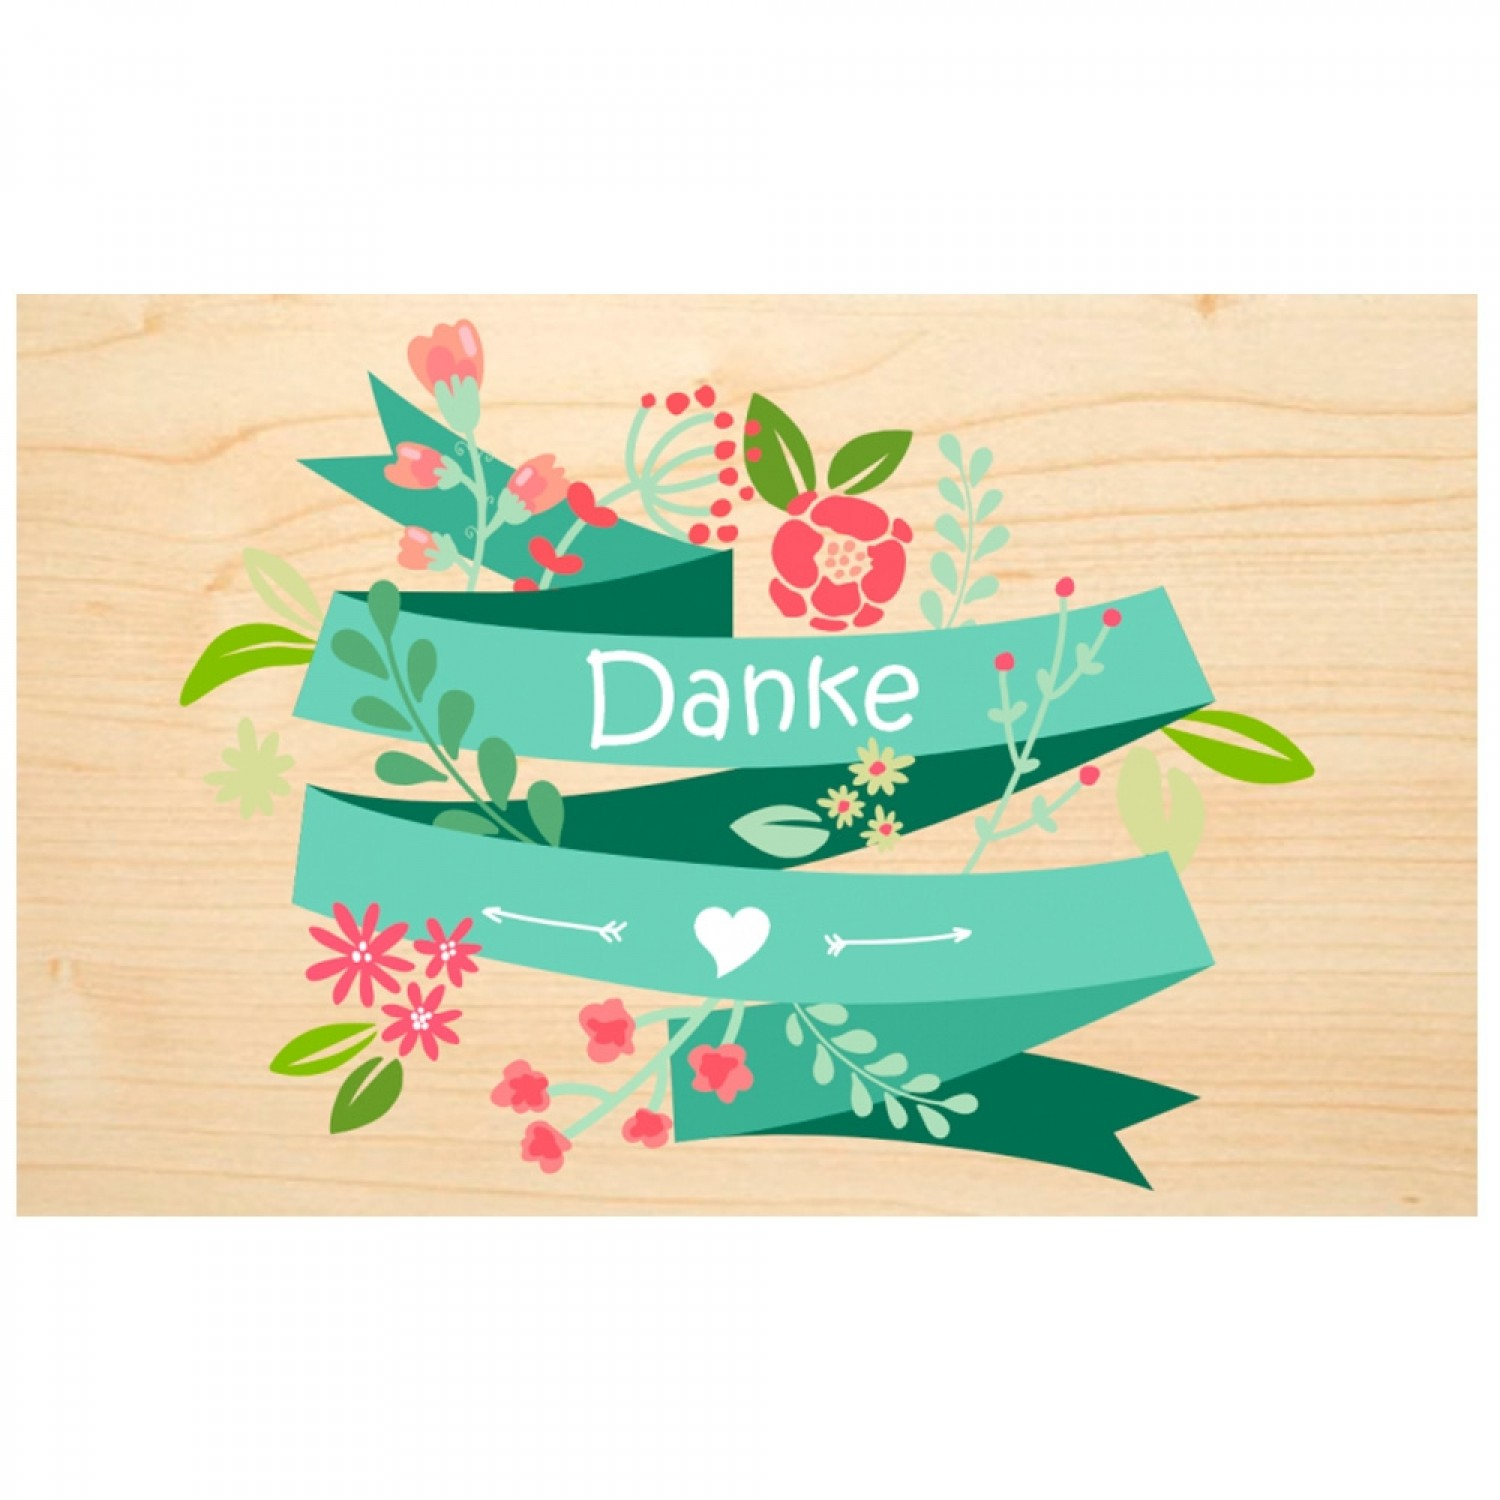 Danke (thank you) wooden postcard - Say it with Nature | Biodora